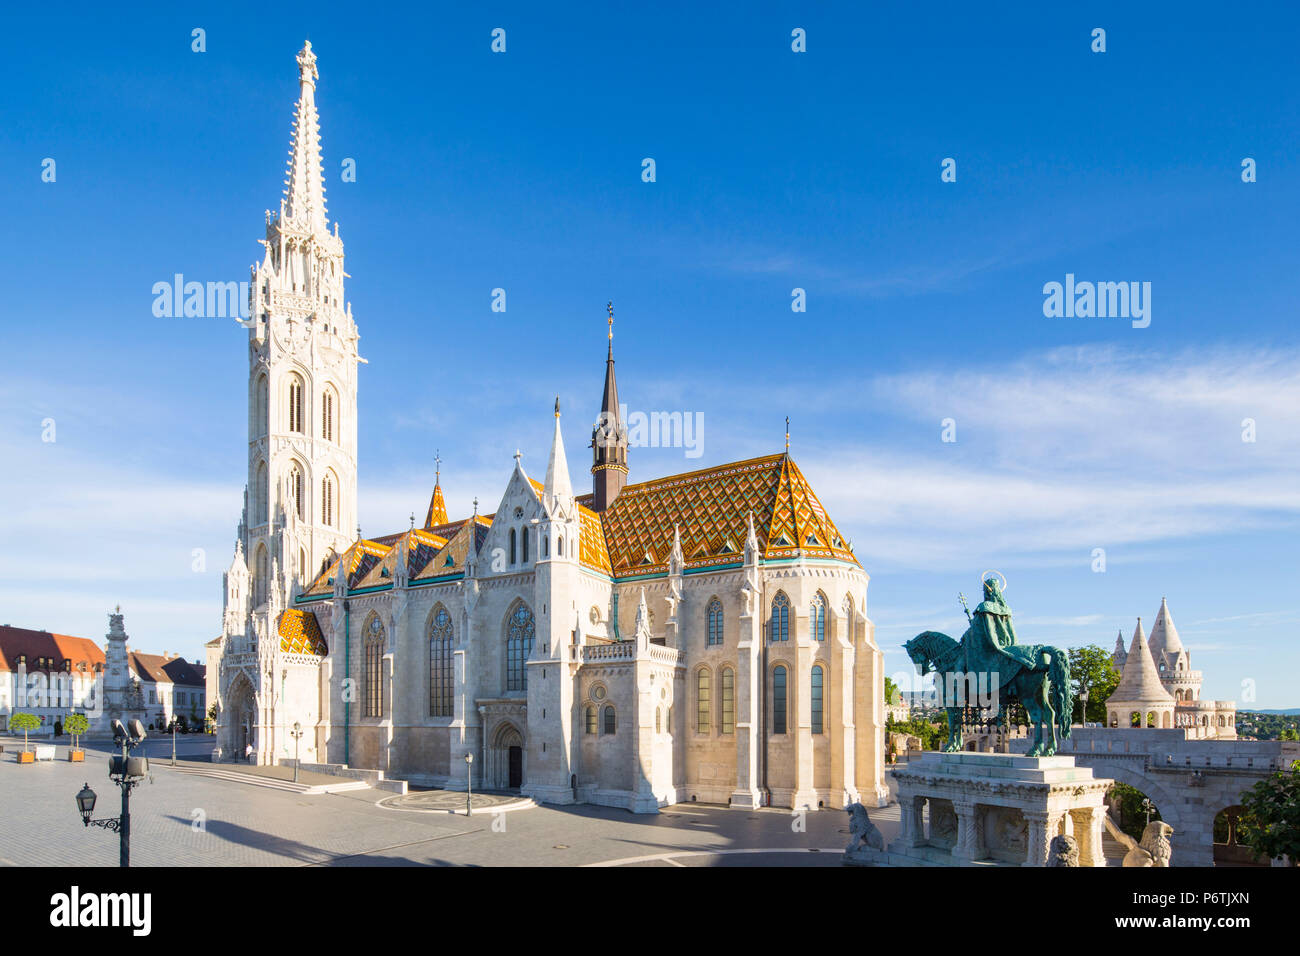 Hungary, Central Hungary, Budapest. St. Matthias Church and St Stephen Statue are located adjacent to Fisherman's Bastion, which takes it's name from the guild of fishermen responsible for defending this stretch of the city during the Middle Ages. - Stock Image